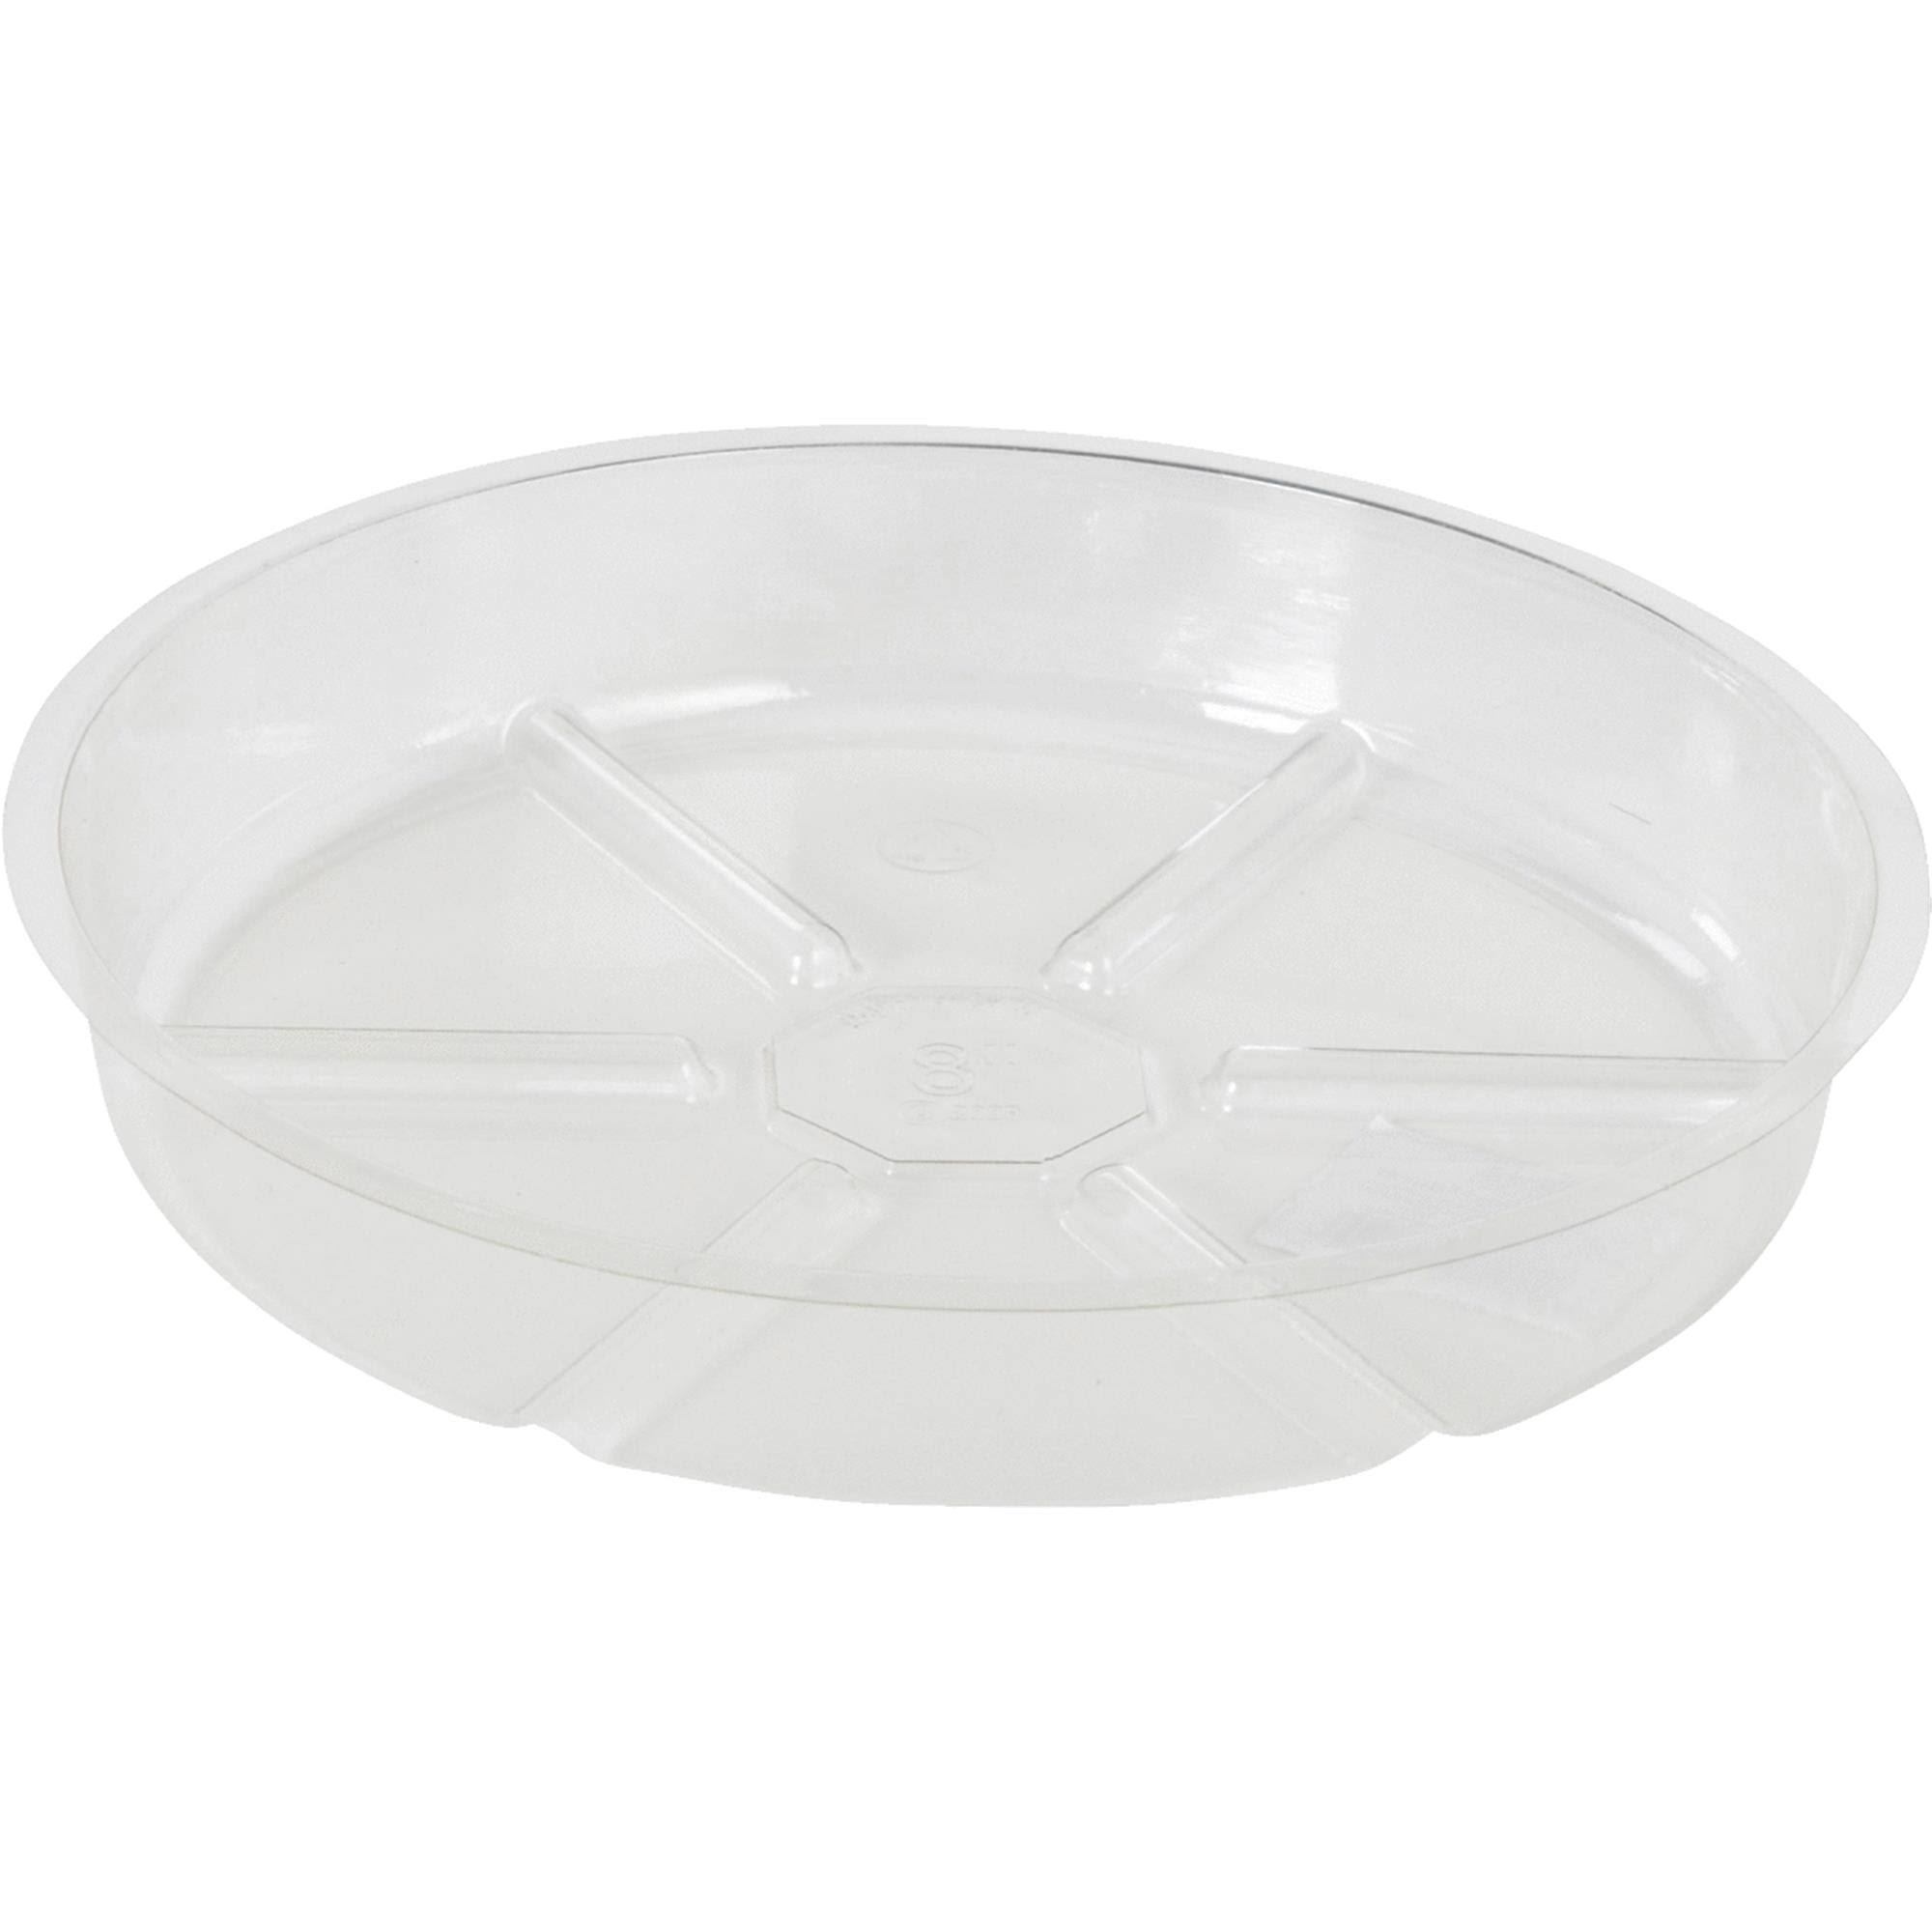 Do It Best Global Sourcing Saucer - Clear